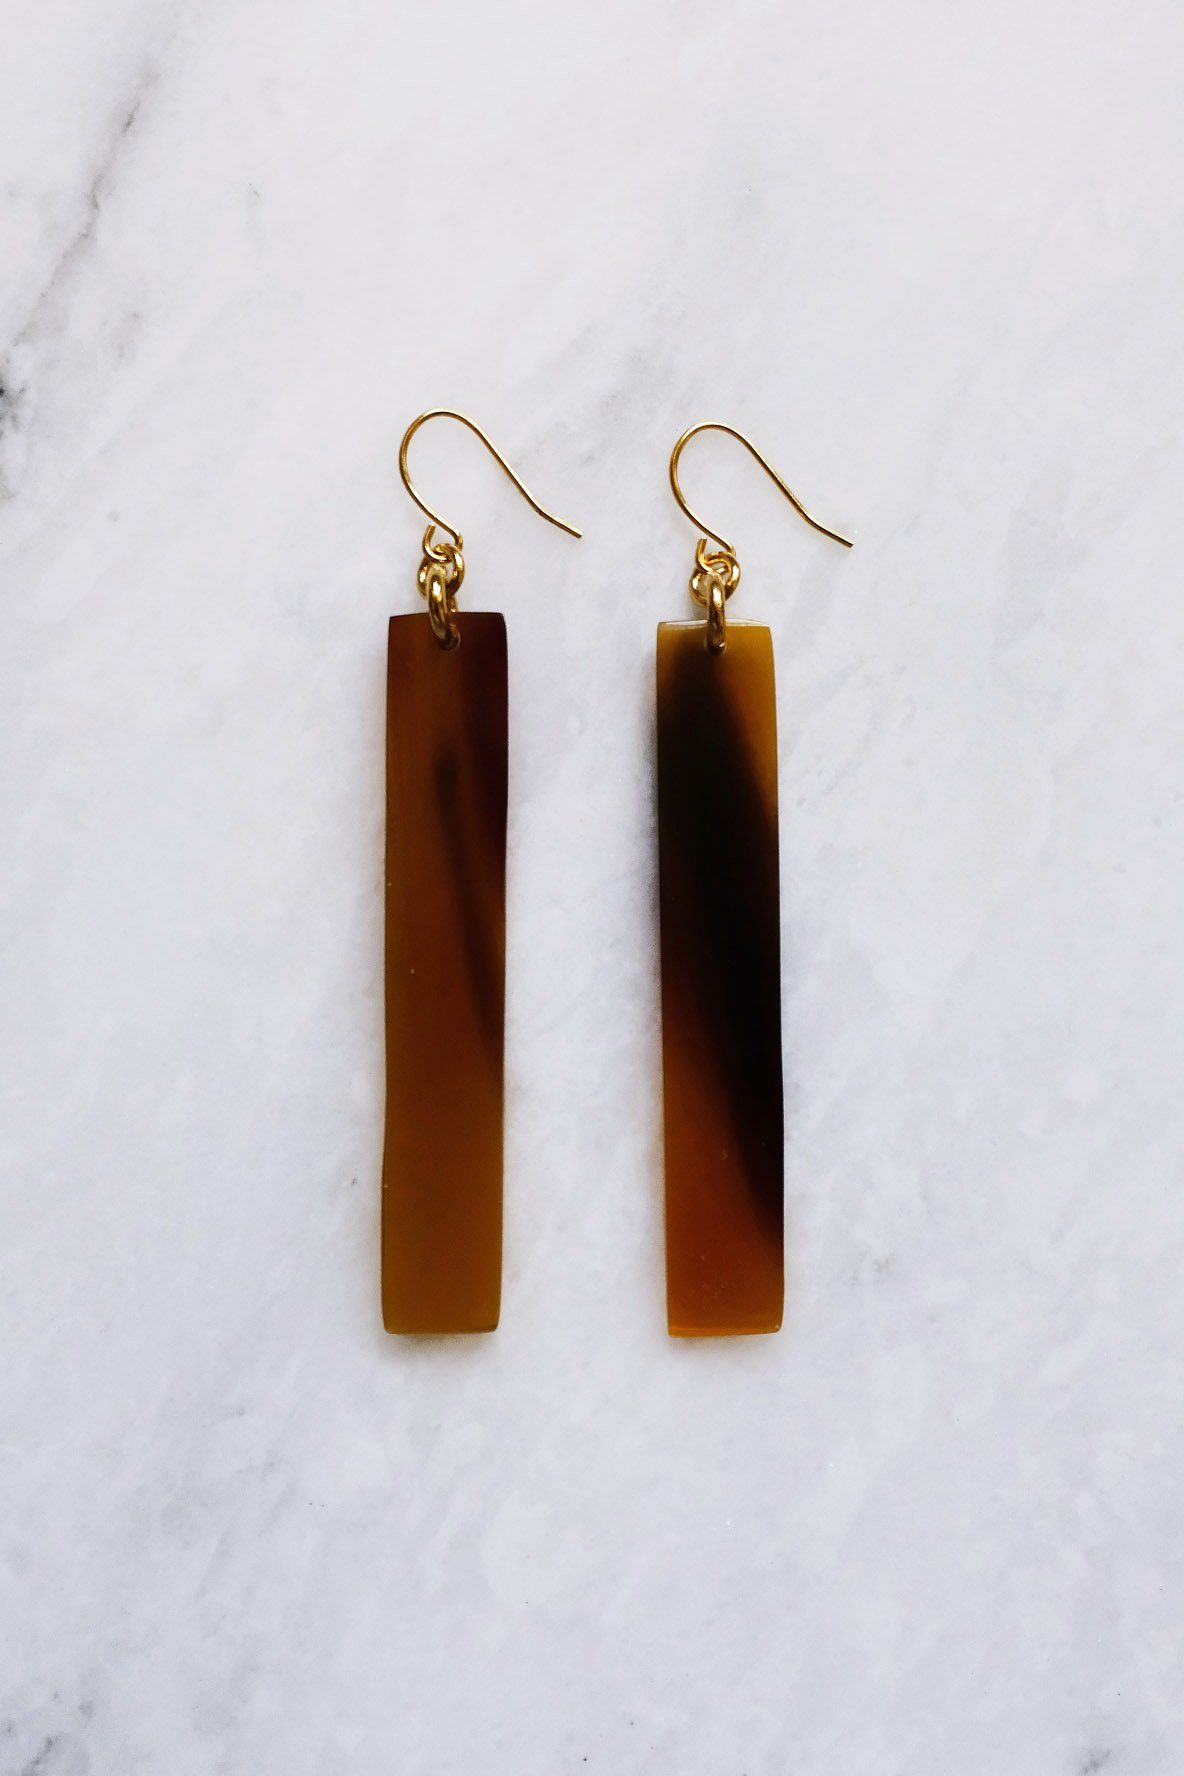 Tinh 16K Gold-Plated Brass Buffalo Horn Minimalist Bar Earrings - Handcrafted & Unique Buffalo Horn Jewelry